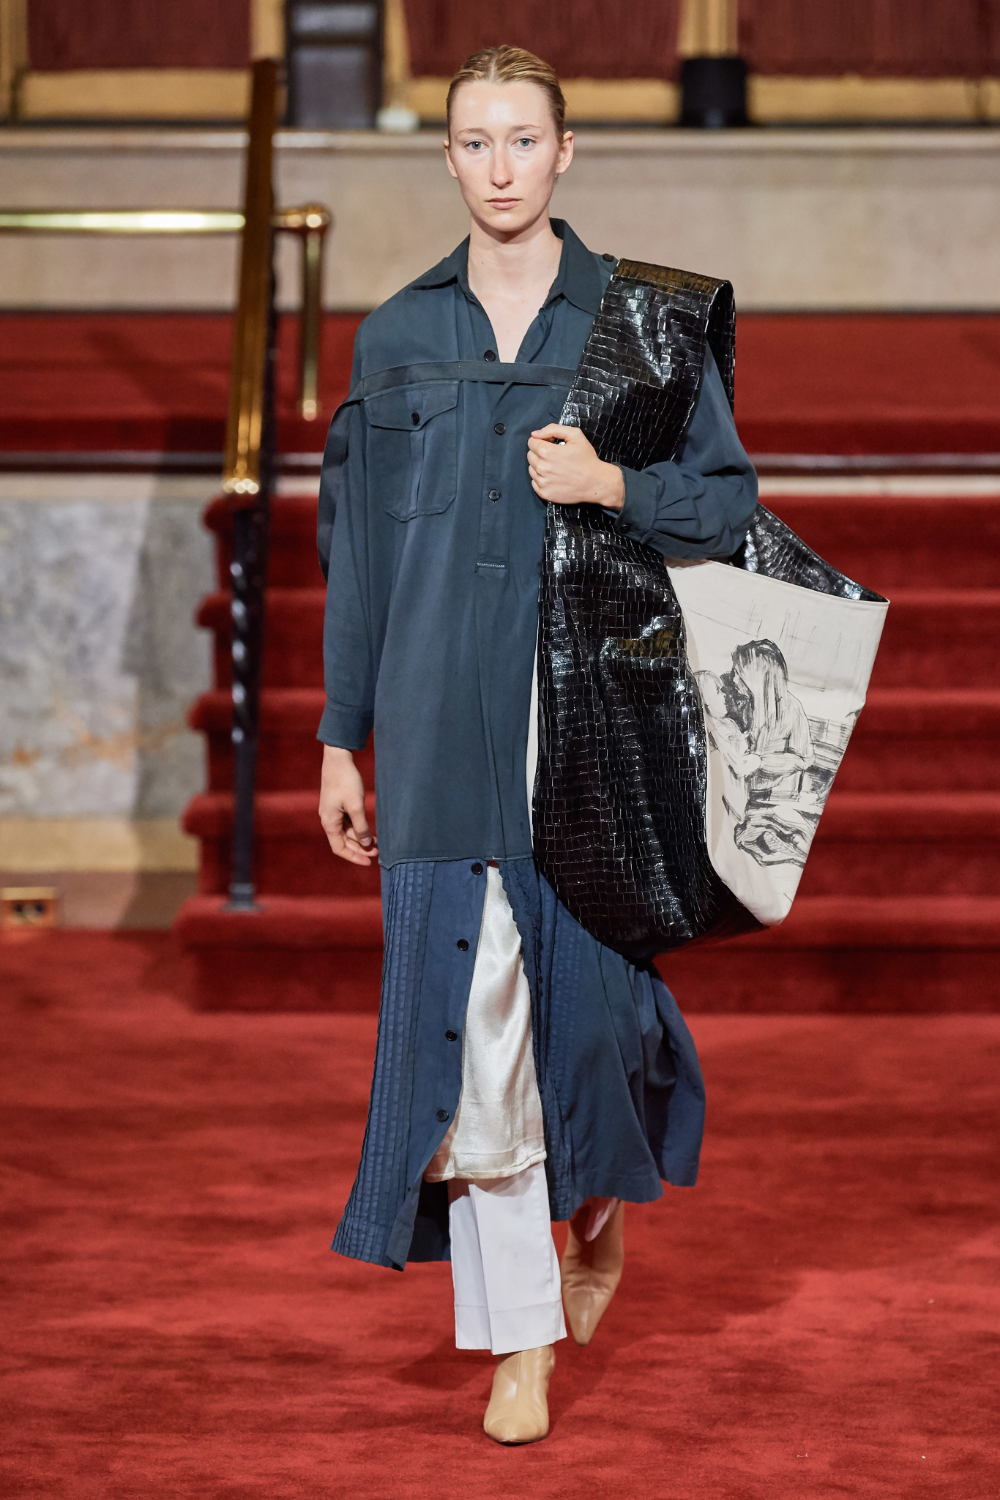 Creatures of the Wind Spring 2020 Ready-to-Wear Fashion Show#creatures #fashion #ready #readytowear #show #spring #wind